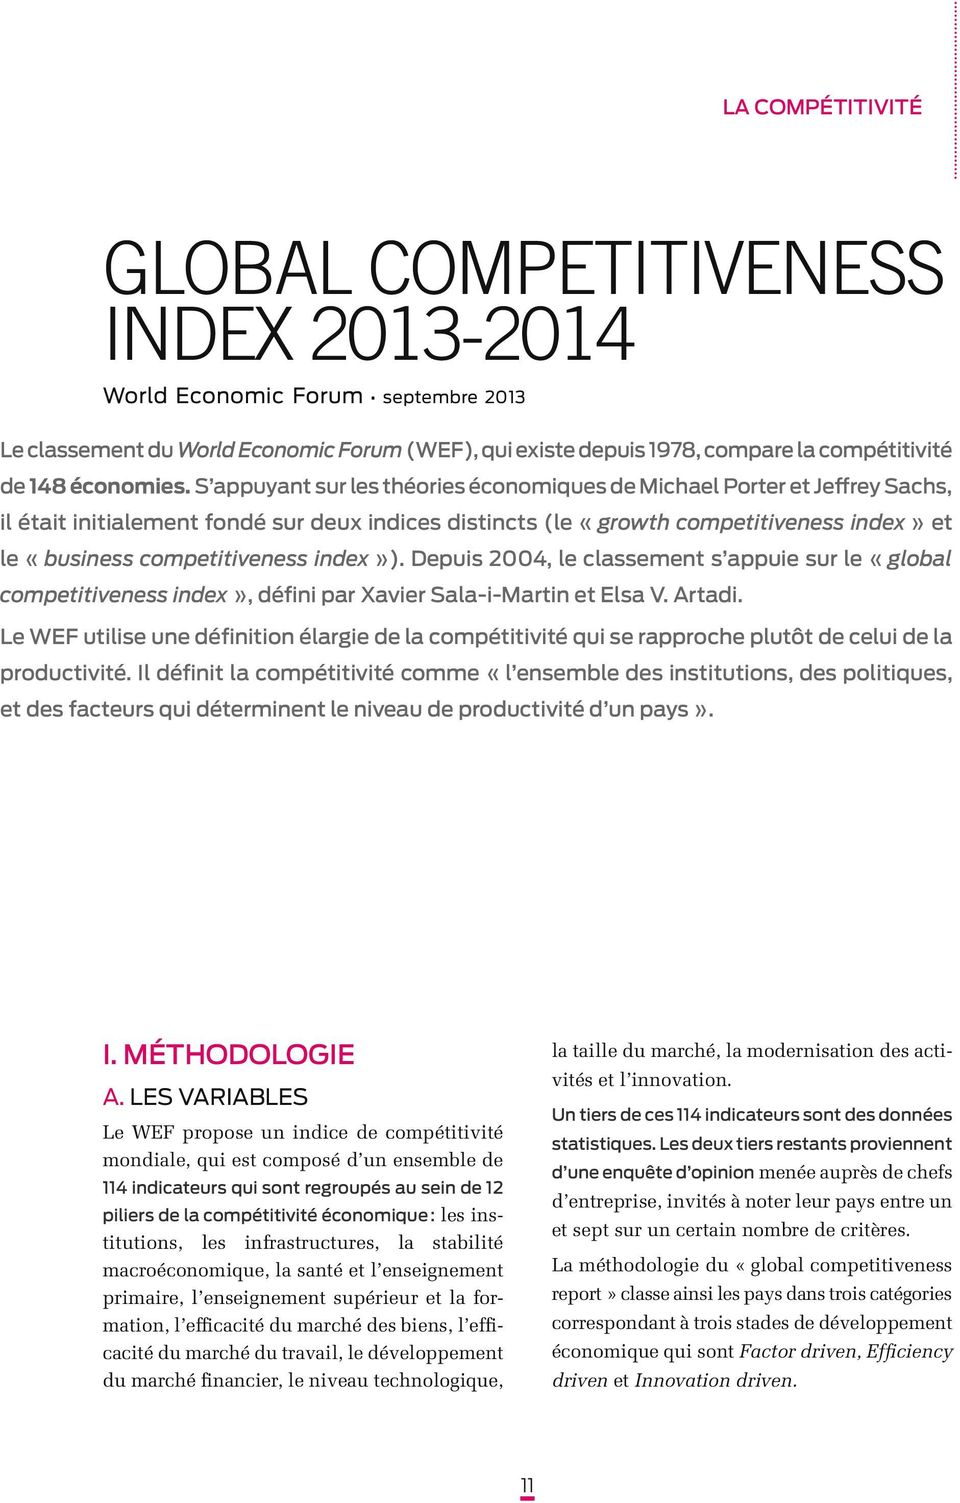 S appuyant sur les théories économiques de Michael Porter et Jeffrey Sachs, il était initialement fondé sur deux indices distincts (le «growth competitiveness index» et le «business competitiveness